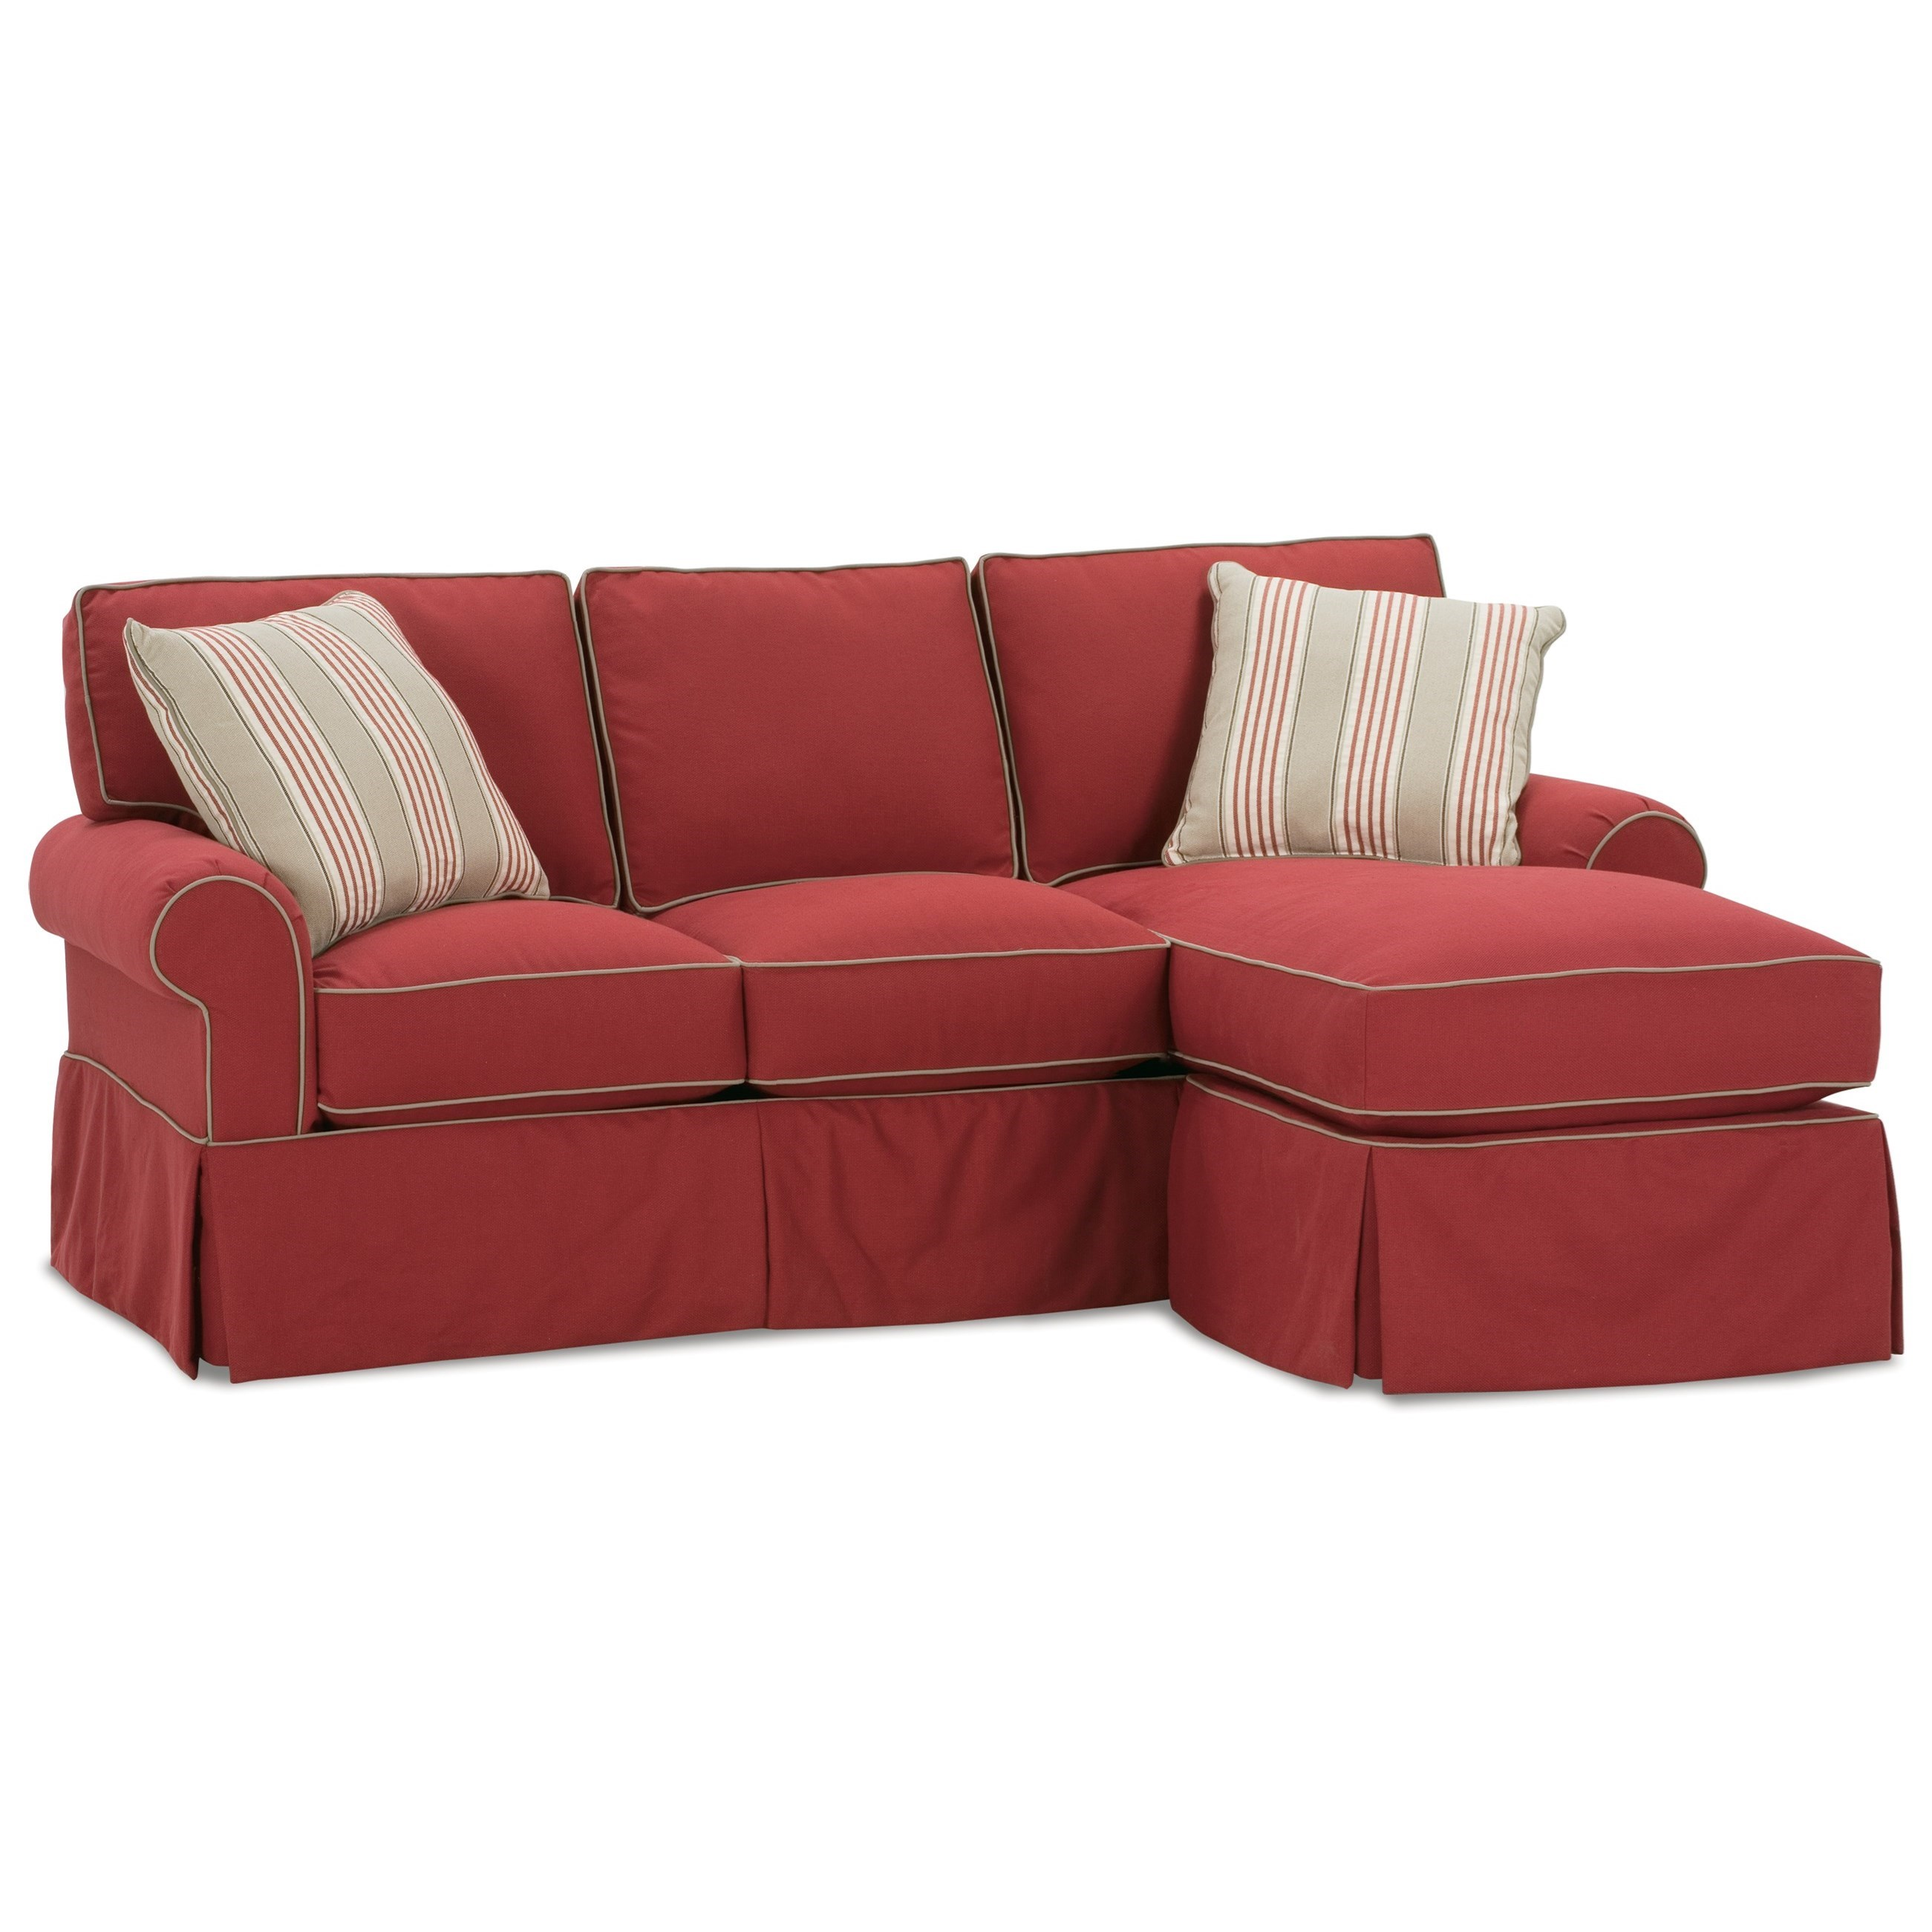 Rowe Hermitage Upholstered Sofa With Chaise Ottoman Belfort Furniture Sectional Sofas